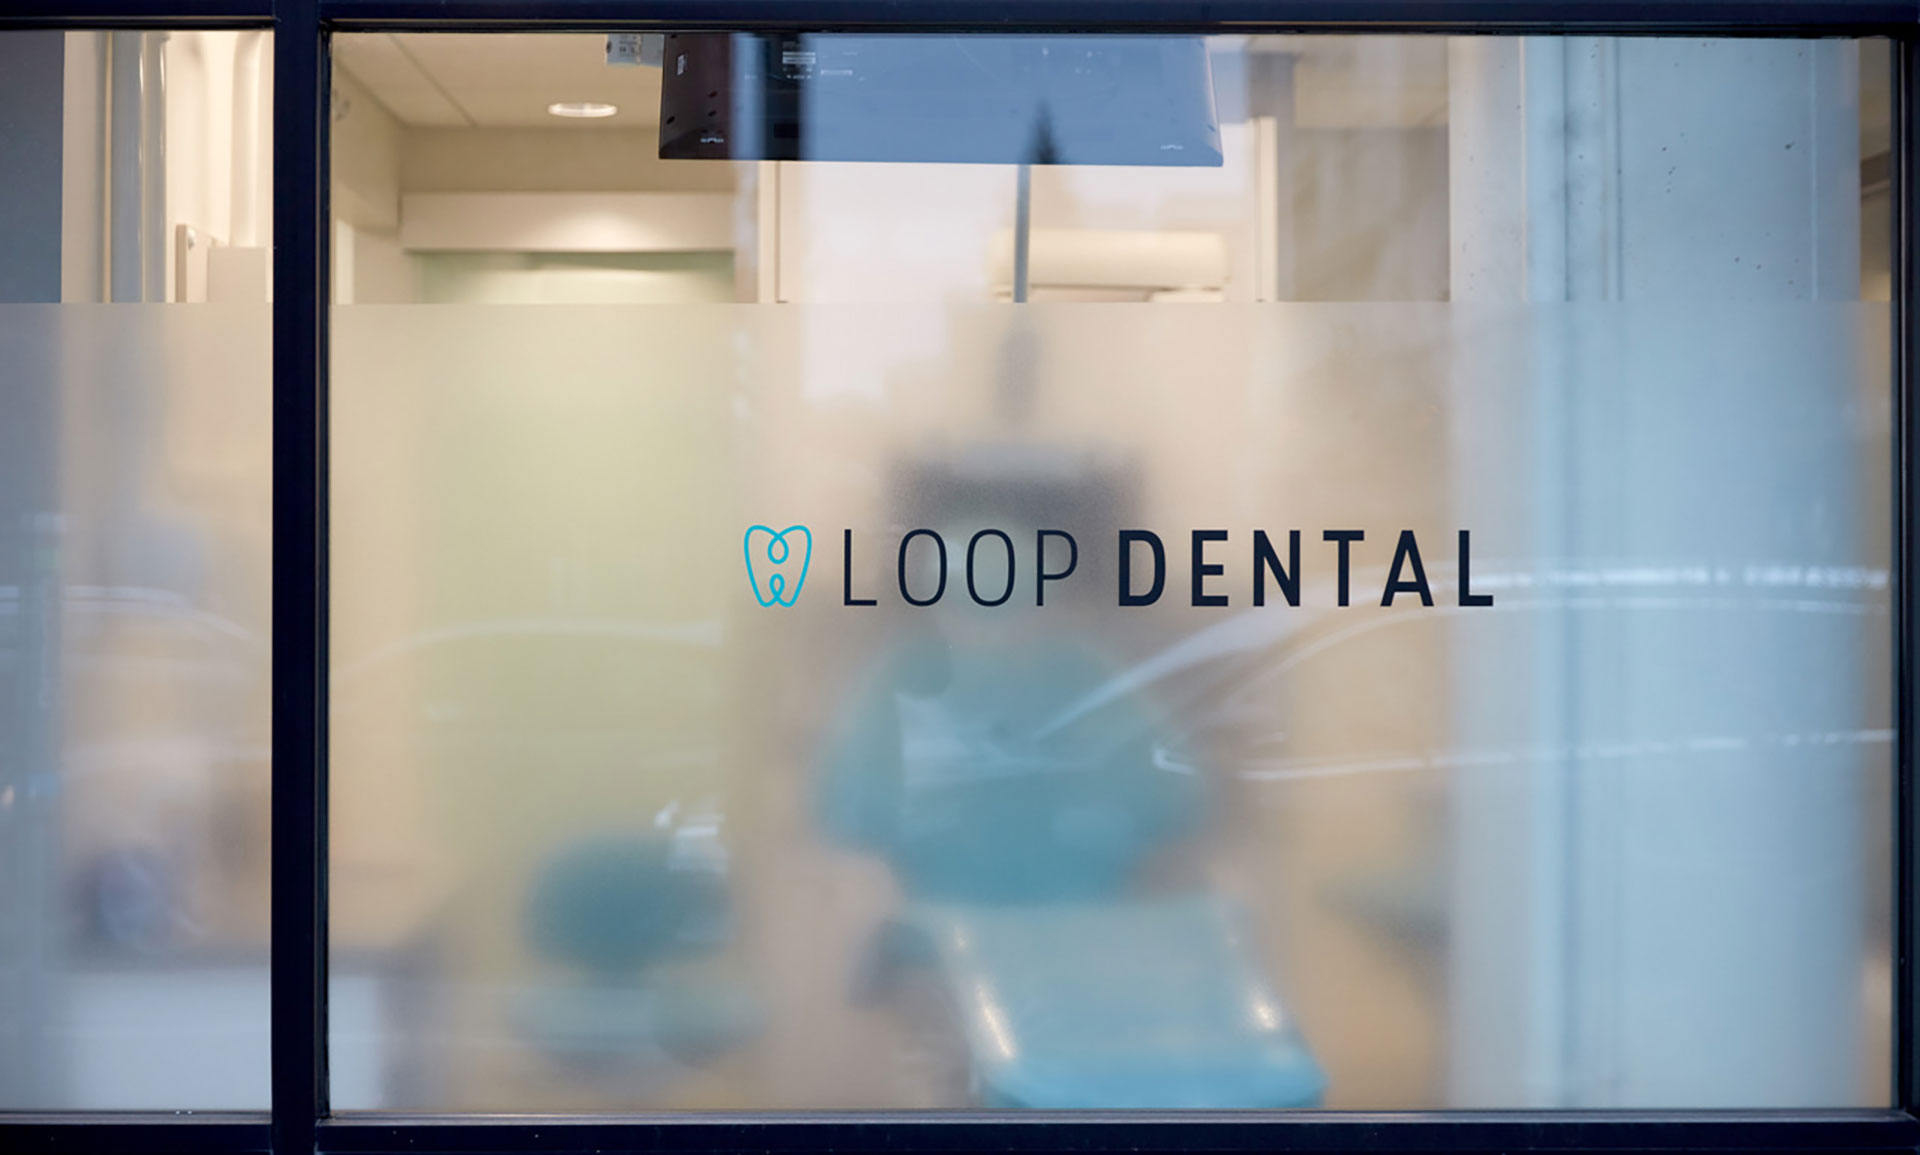 Loop Dental